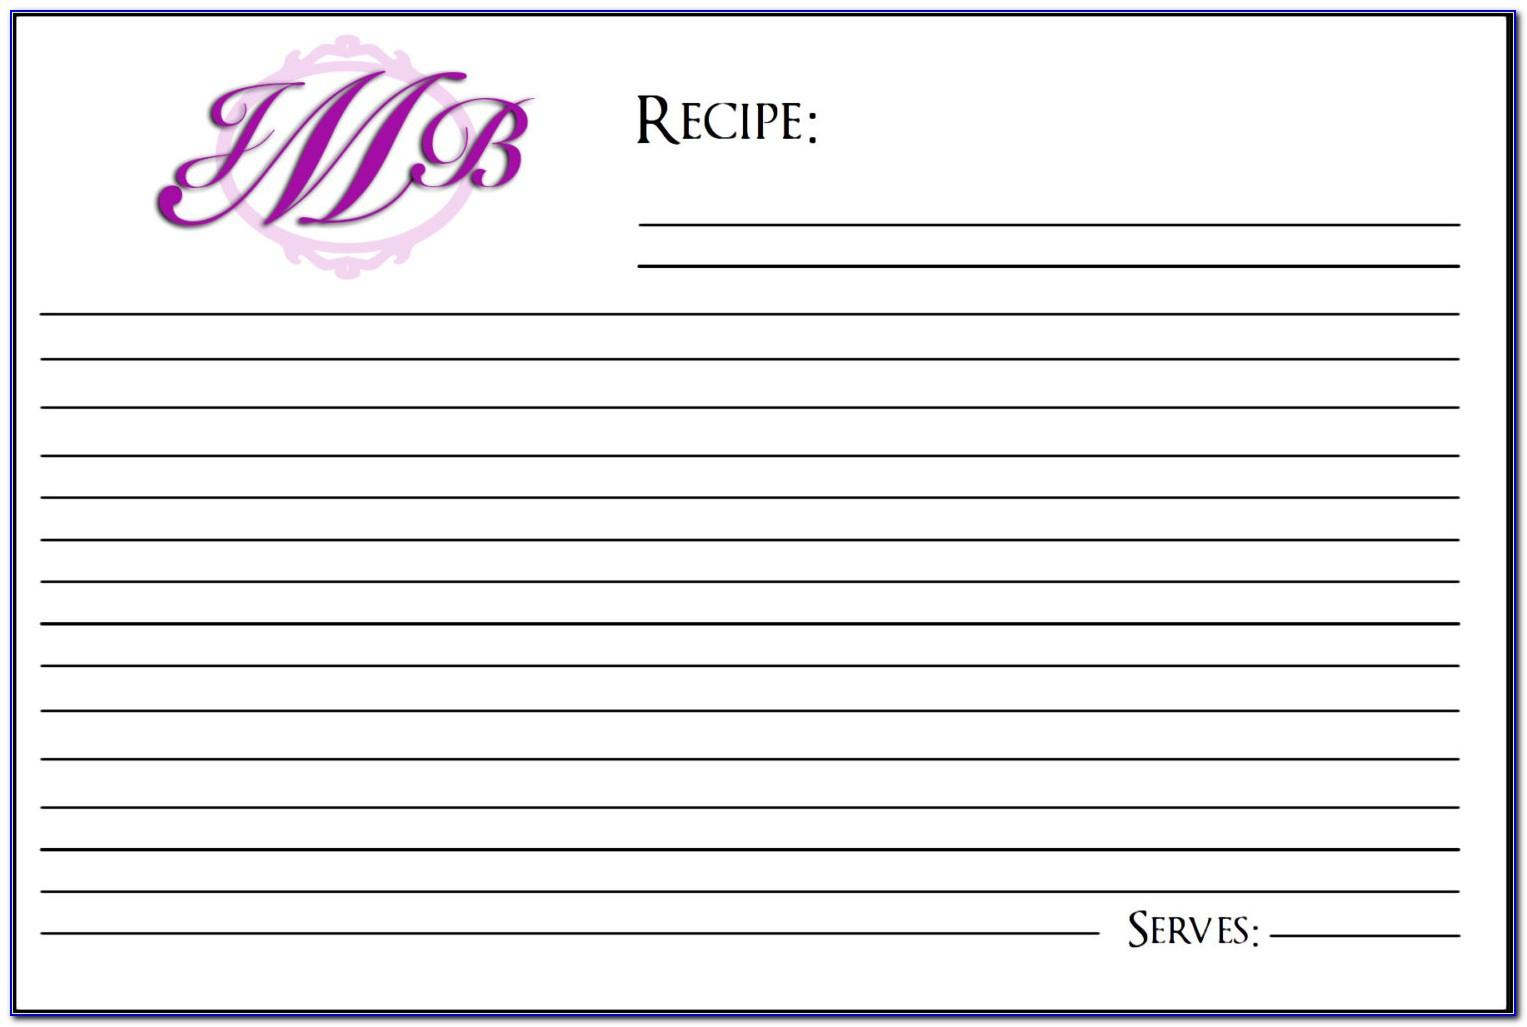 4 X 6 Recipe Card Template For Word